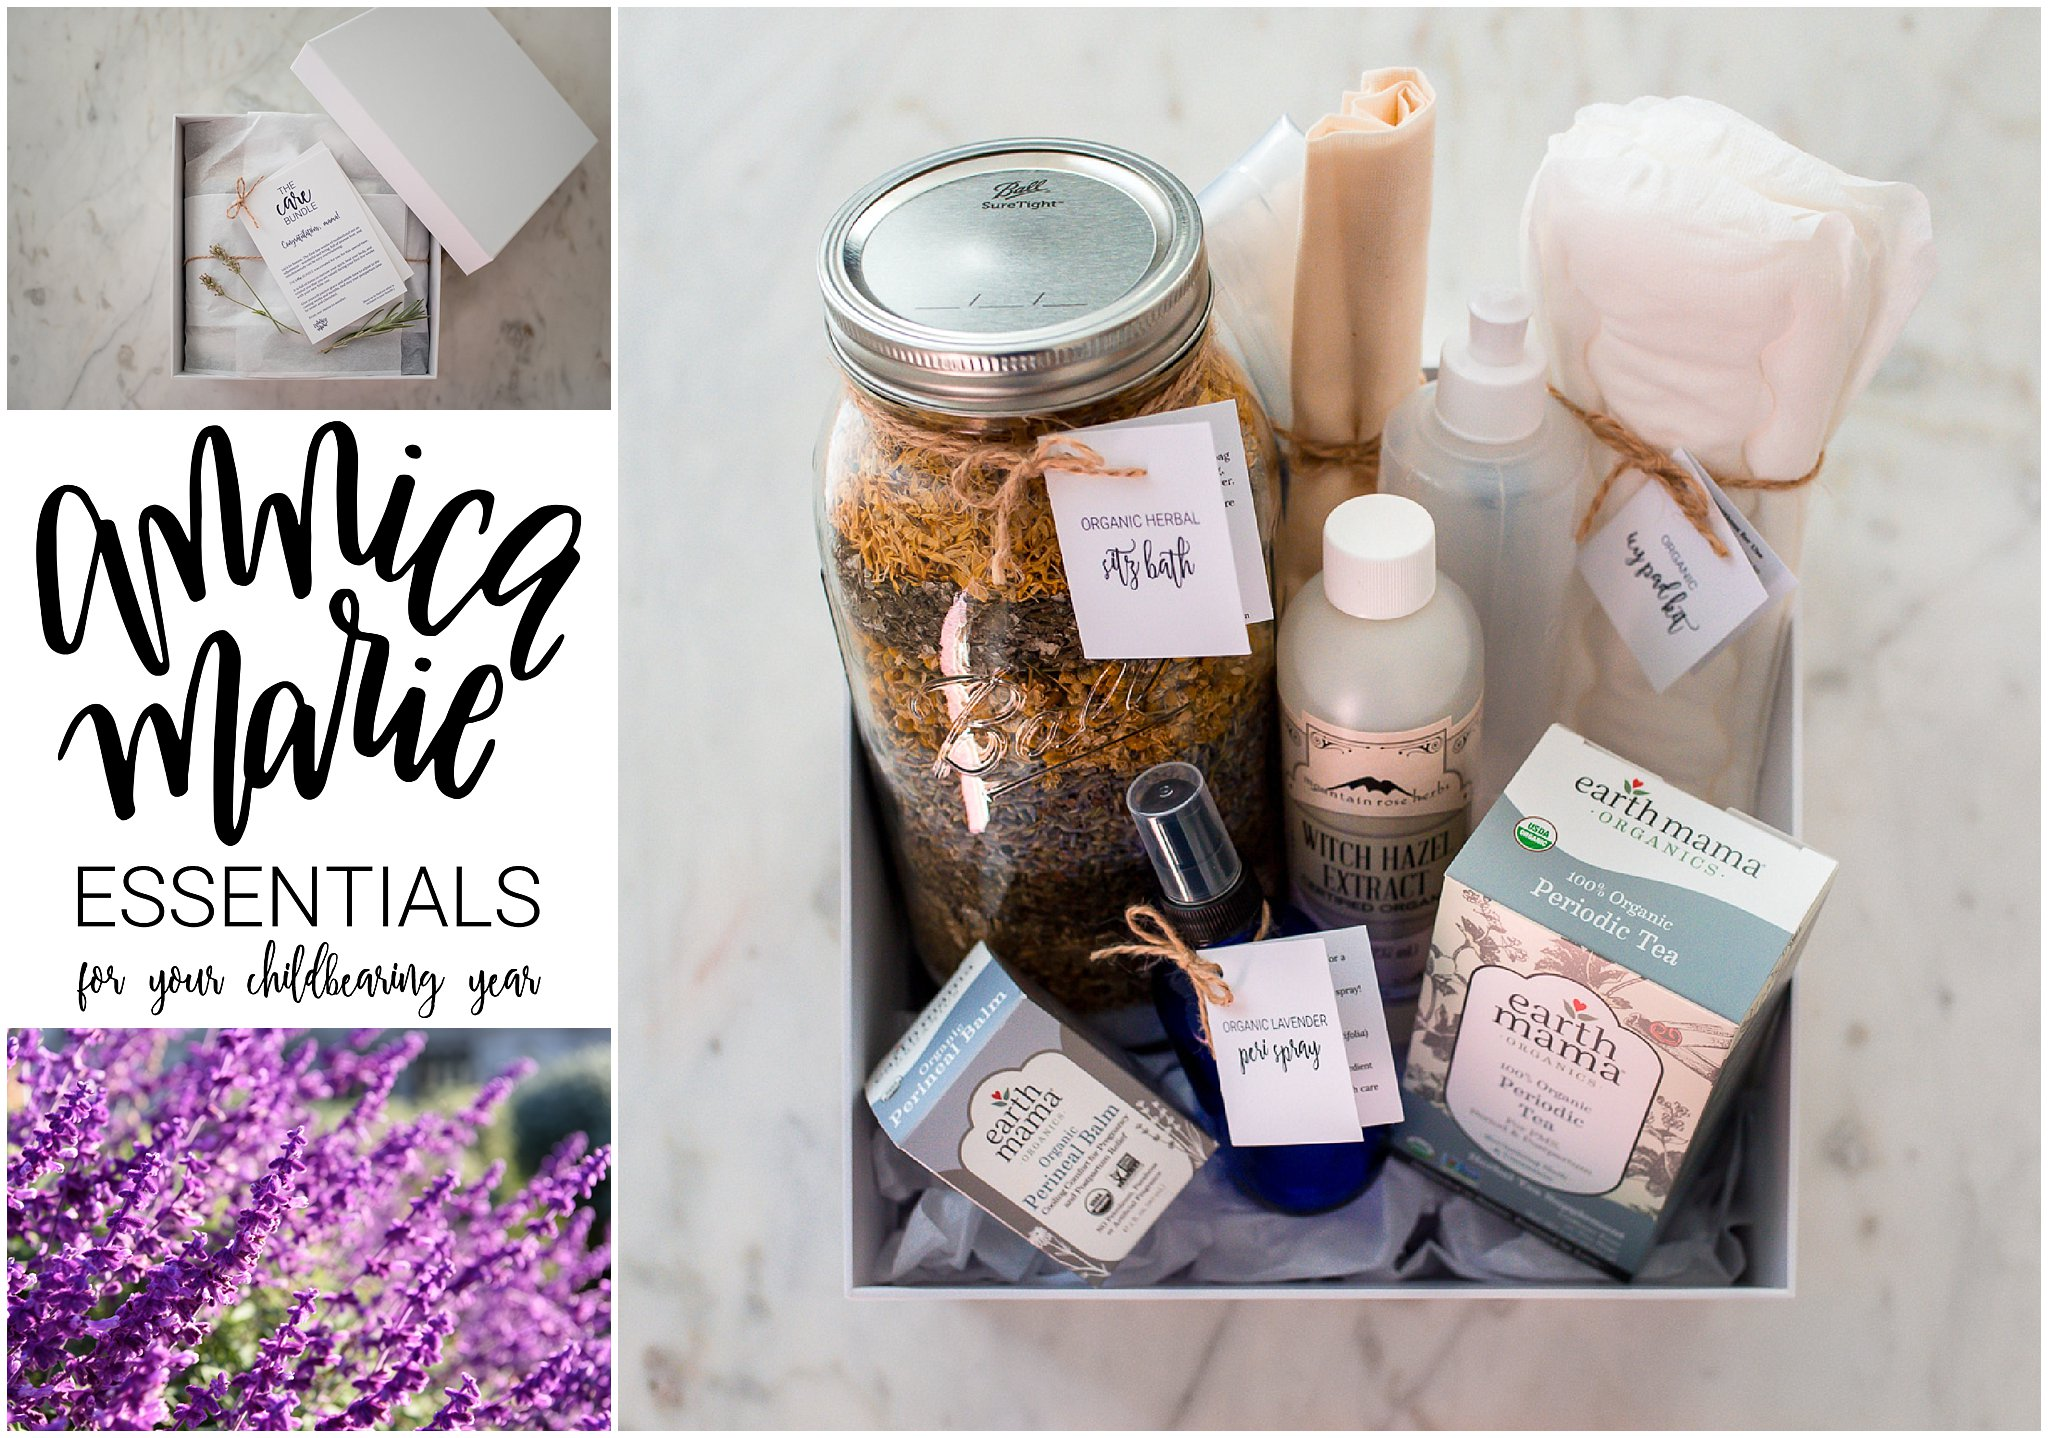 Annica Marie Essentials Lavender flowers the care bundle sitz bath